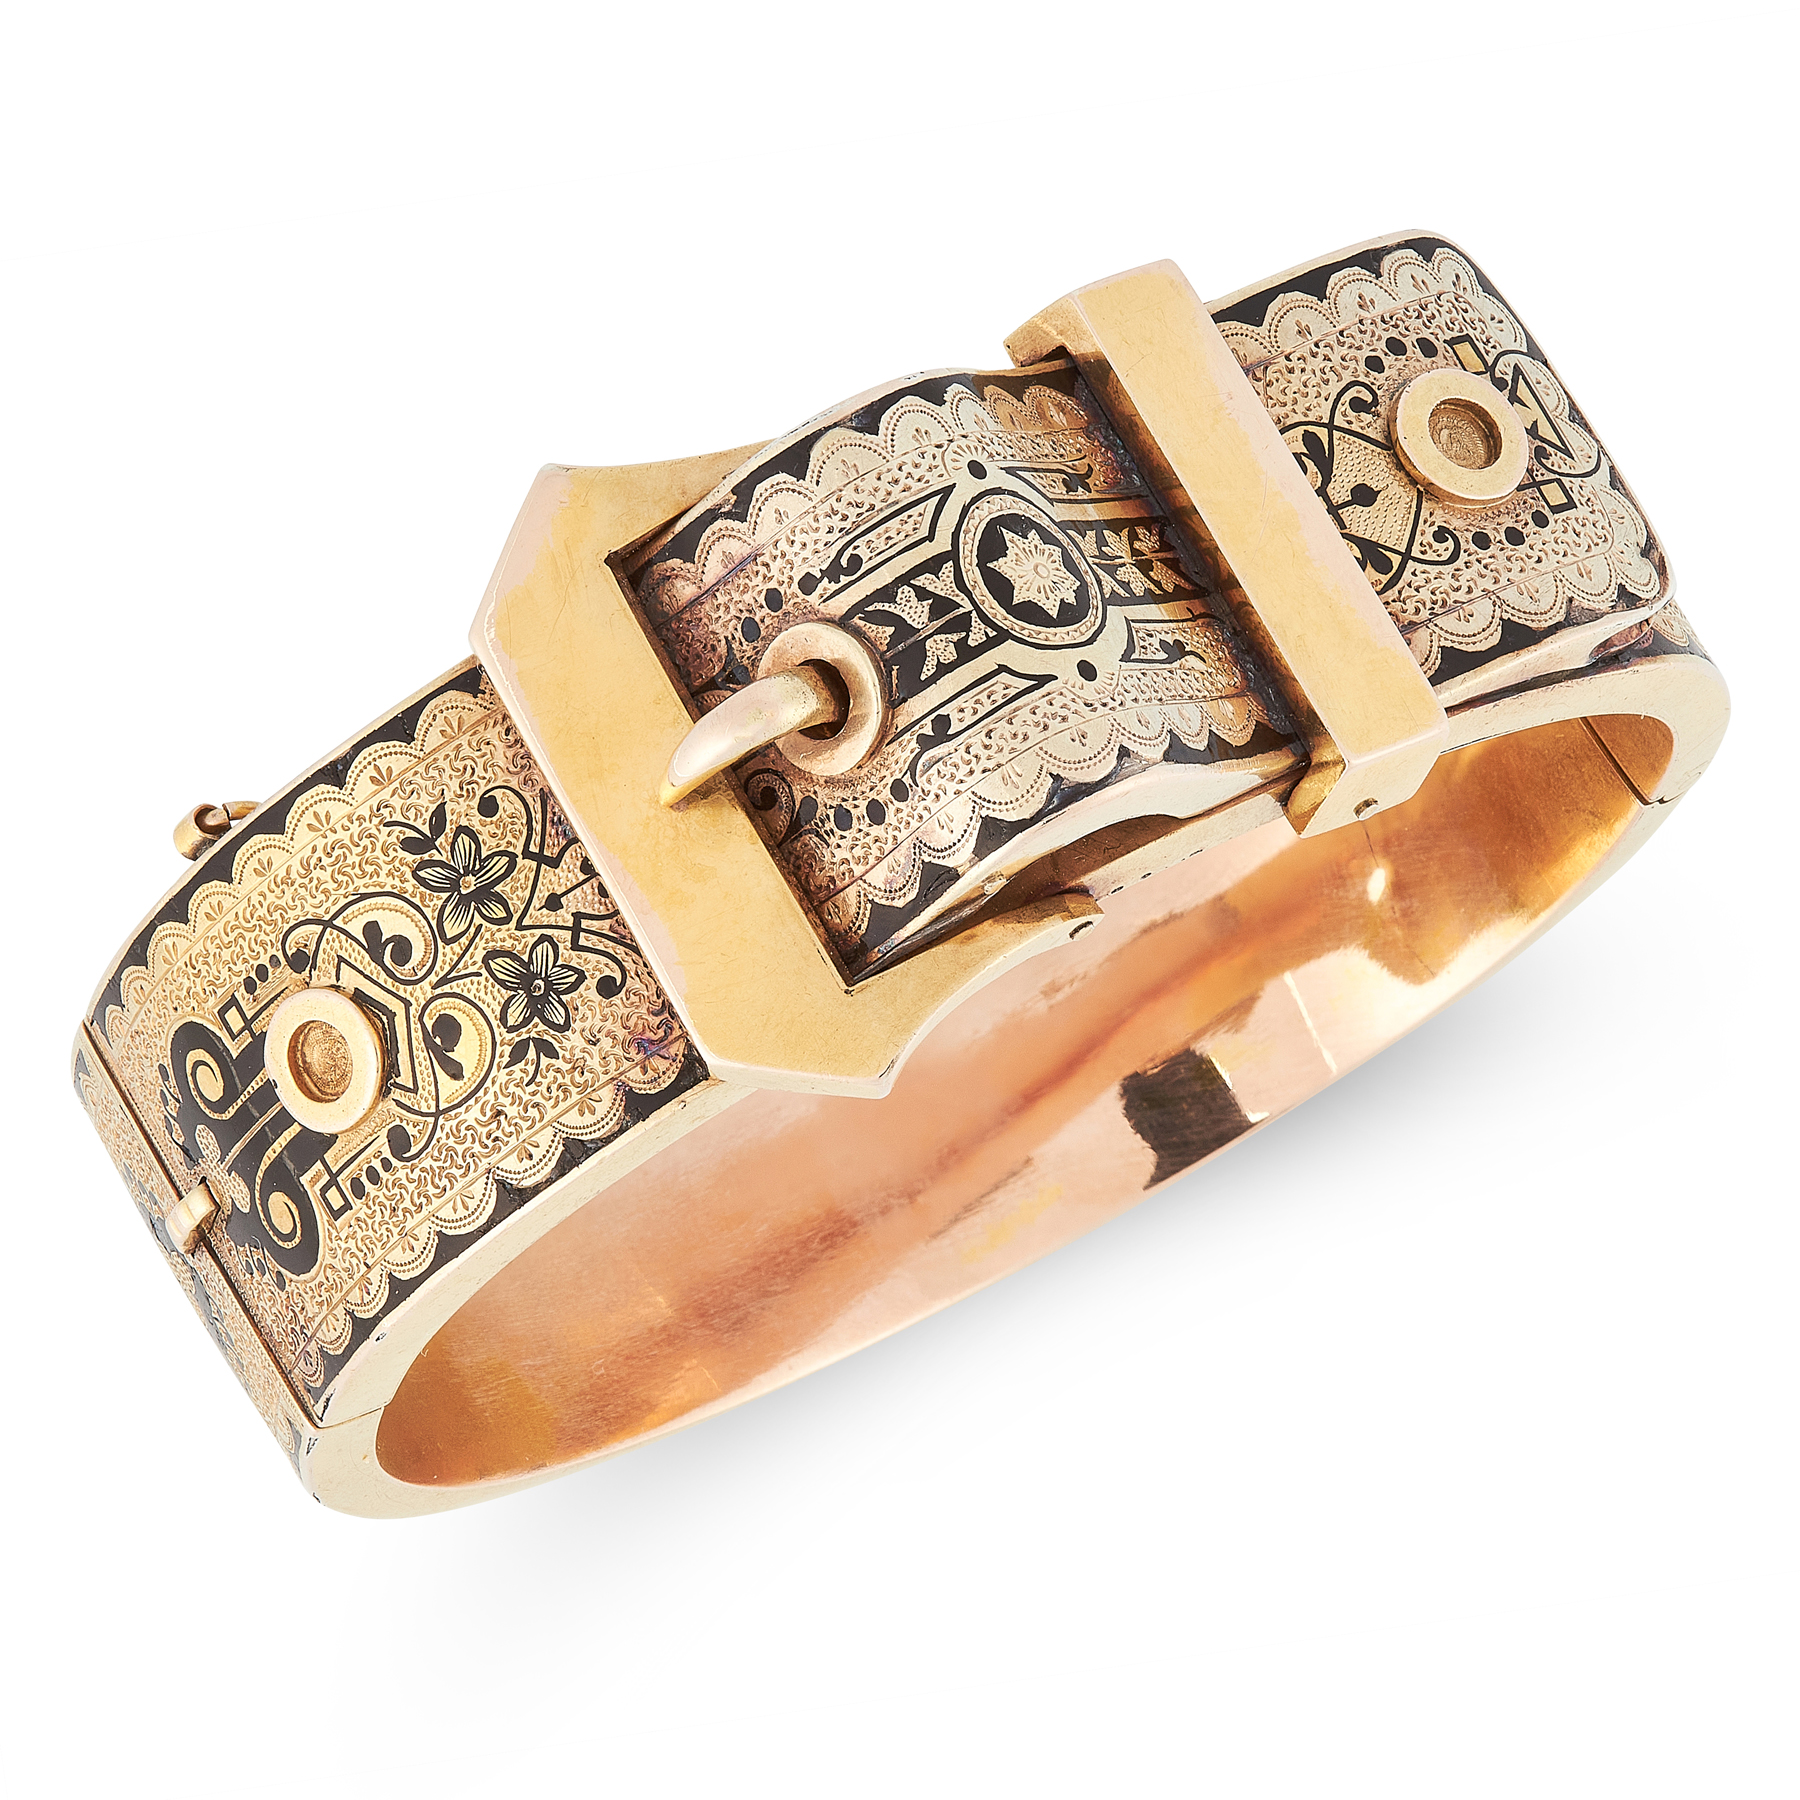 A FINE ANTIQUE ENAMEL BUCKLE BANGLE in yellow gold, designed as a fastened belt buckle, engraved and